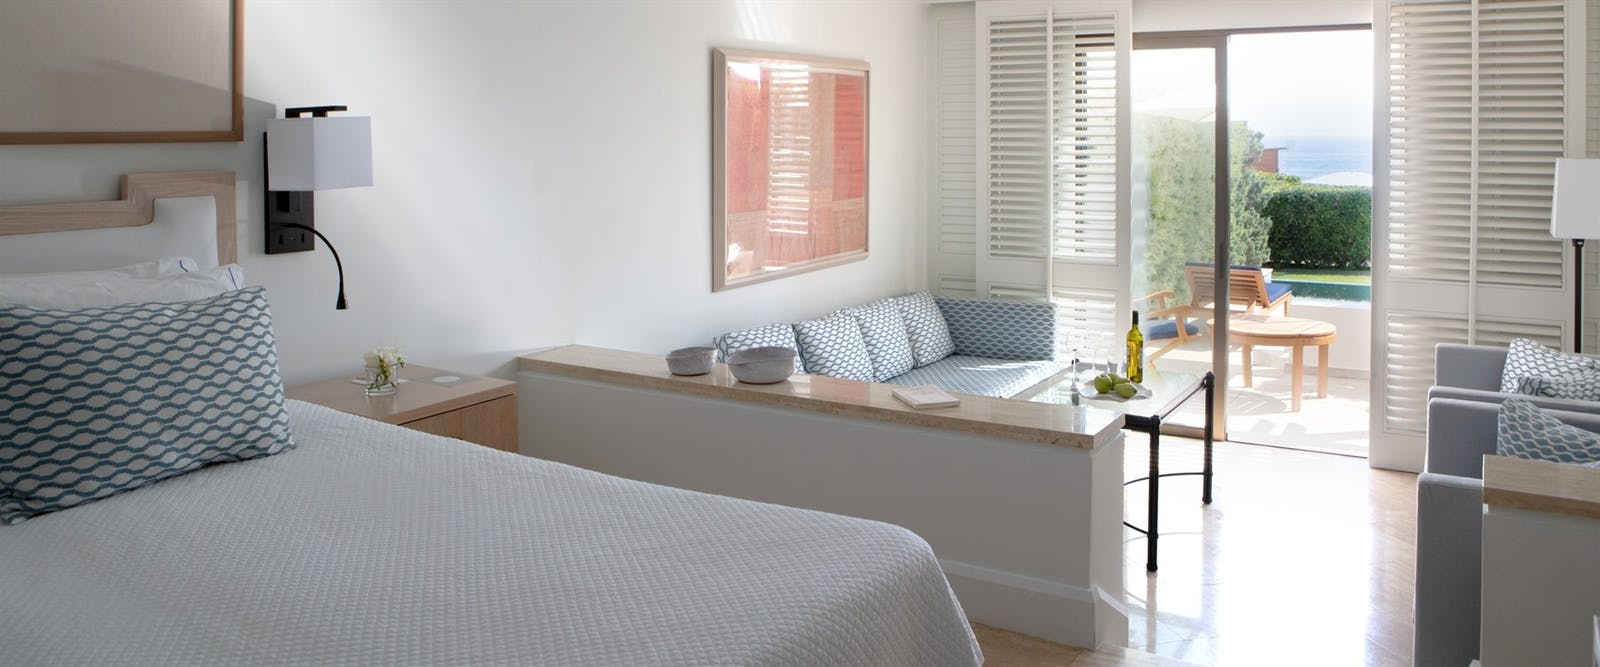 Studio Suite with Private Pool at Annabelle, Paphos, Cyprus